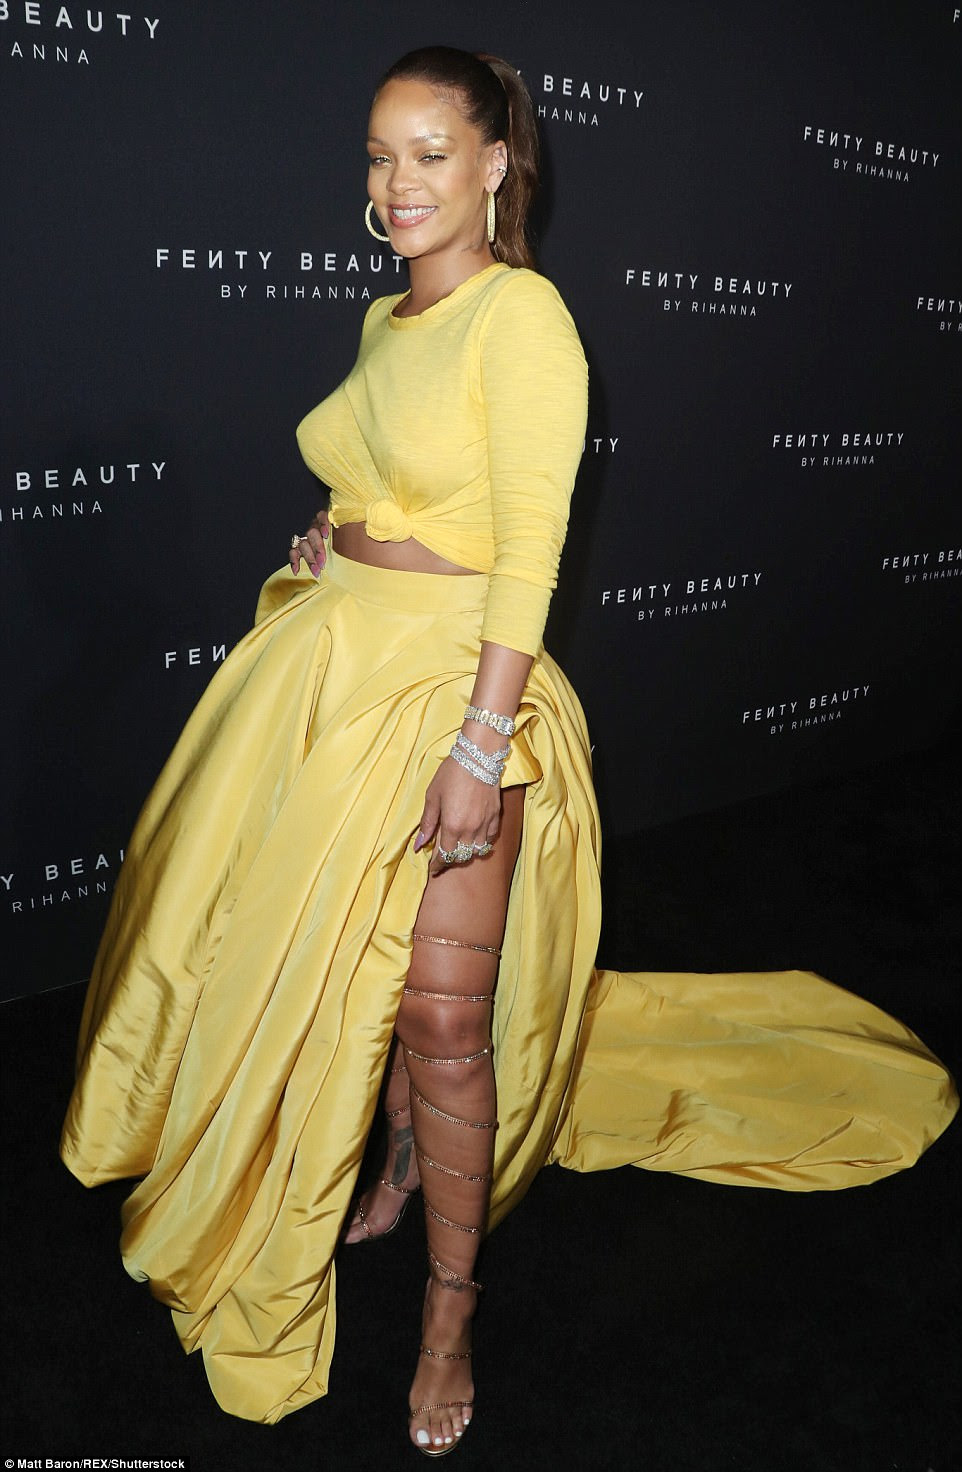 Fashionable choice: She paired the dramatic skirt with a coordinating long-sleeved T-shirt also in bright yellow that she tied into a knot revealing a hint of her toned midsection